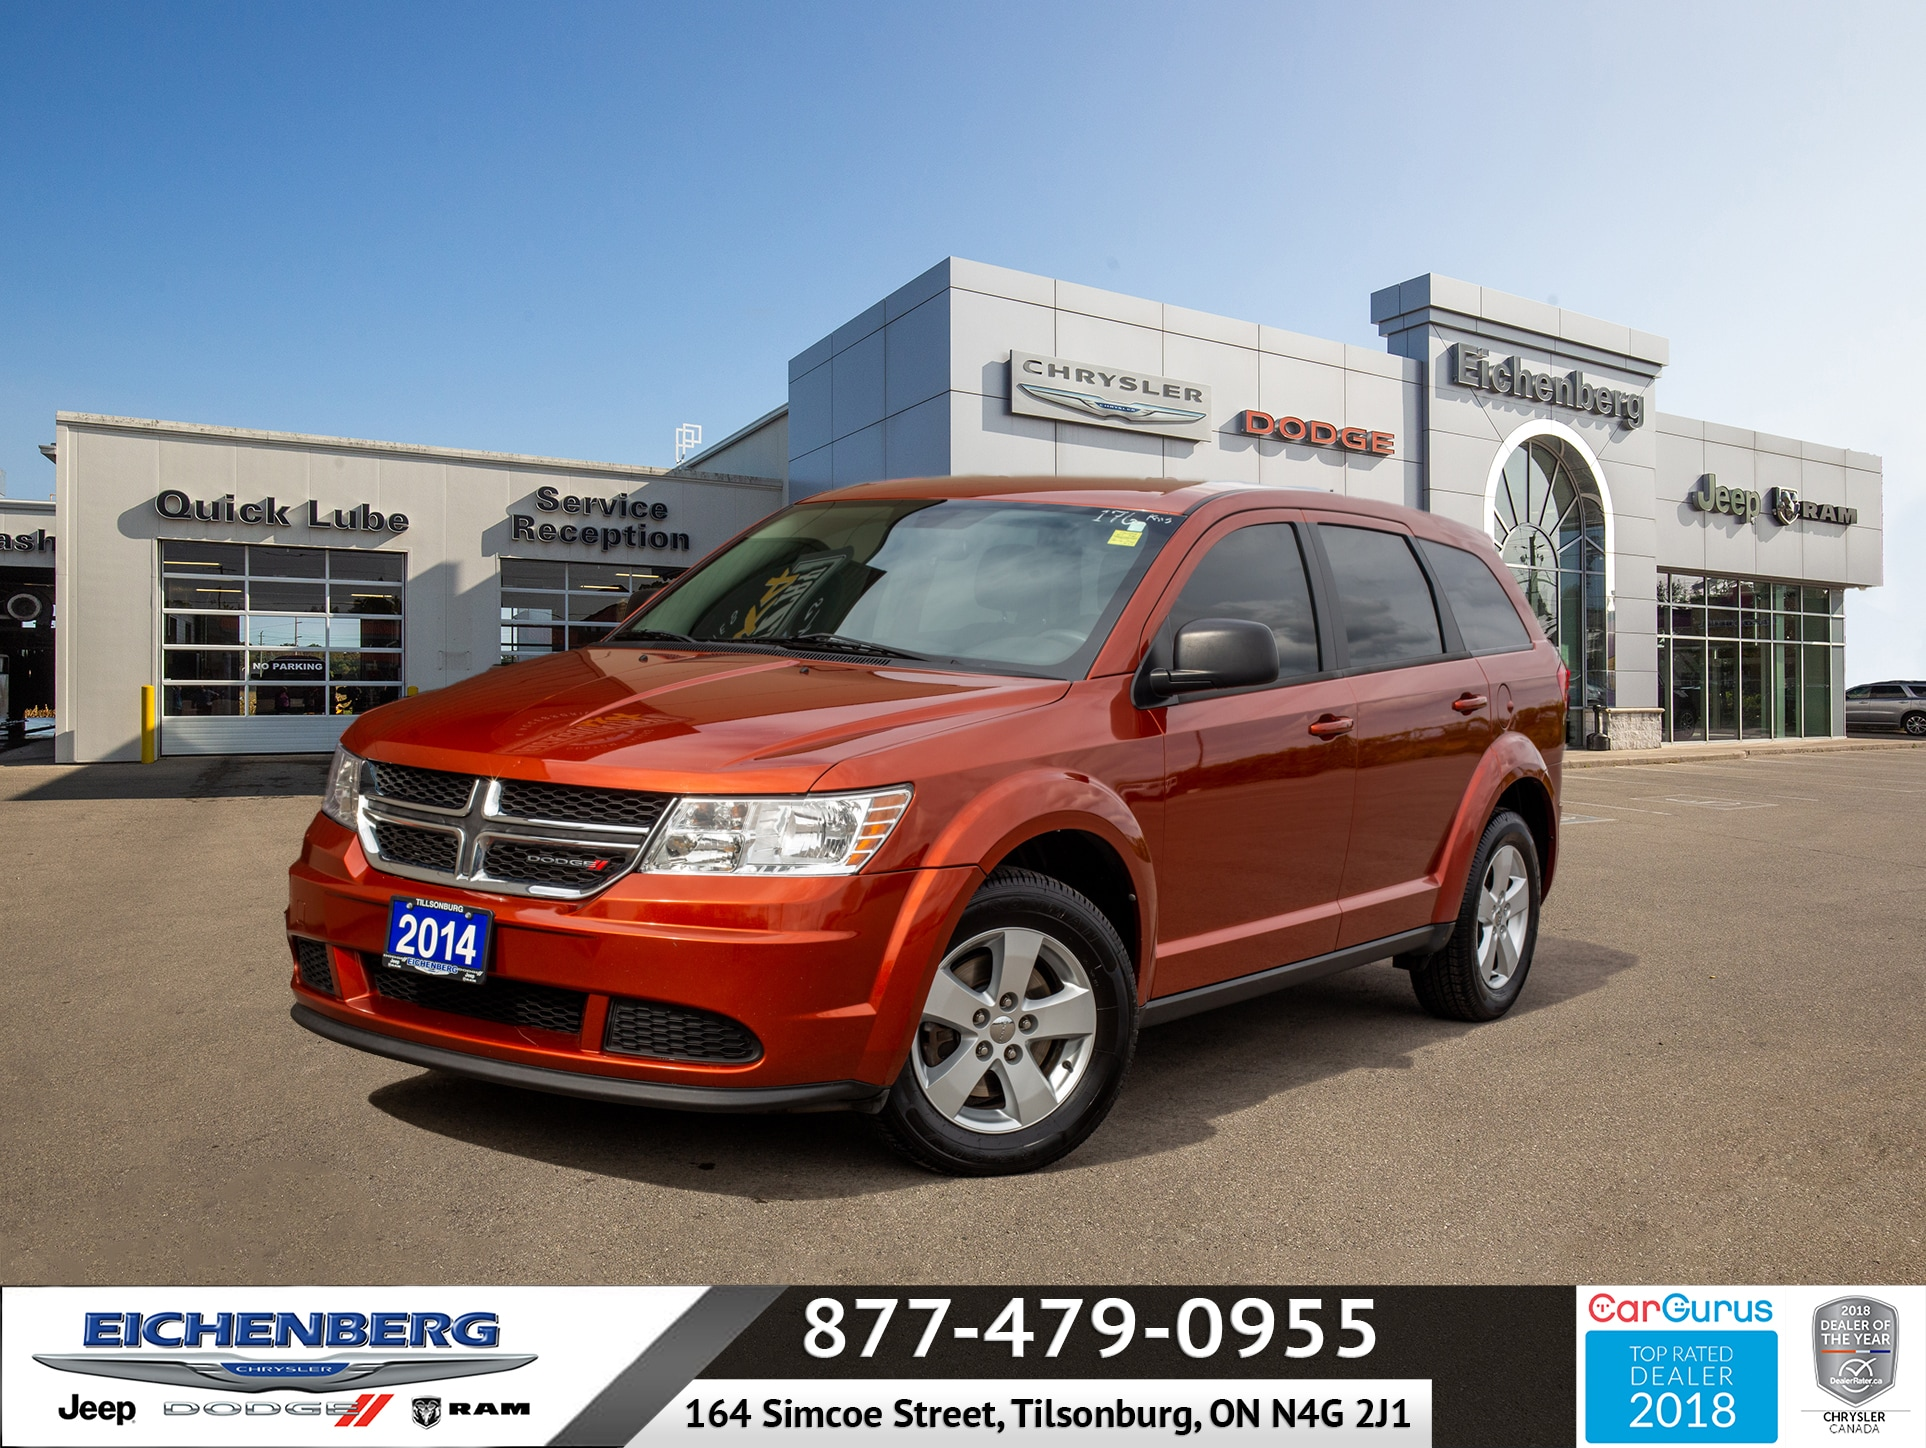 used 2014 Dodge Journey car, priced at $6,999